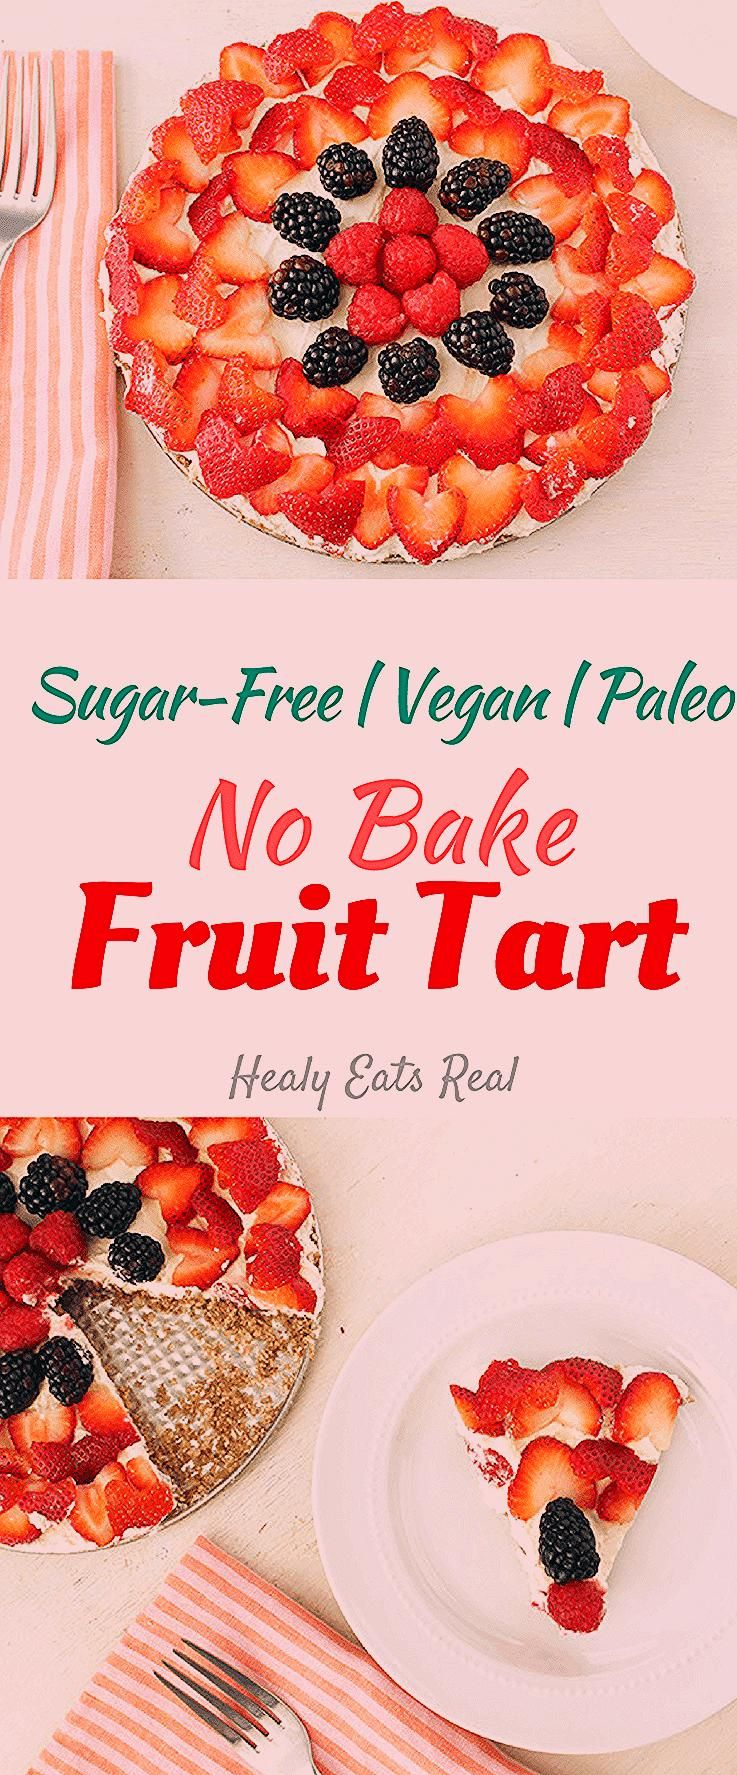 Photo of No Bake Fruit Tart Recipe (Sugar Free, Vegan & Paleo)